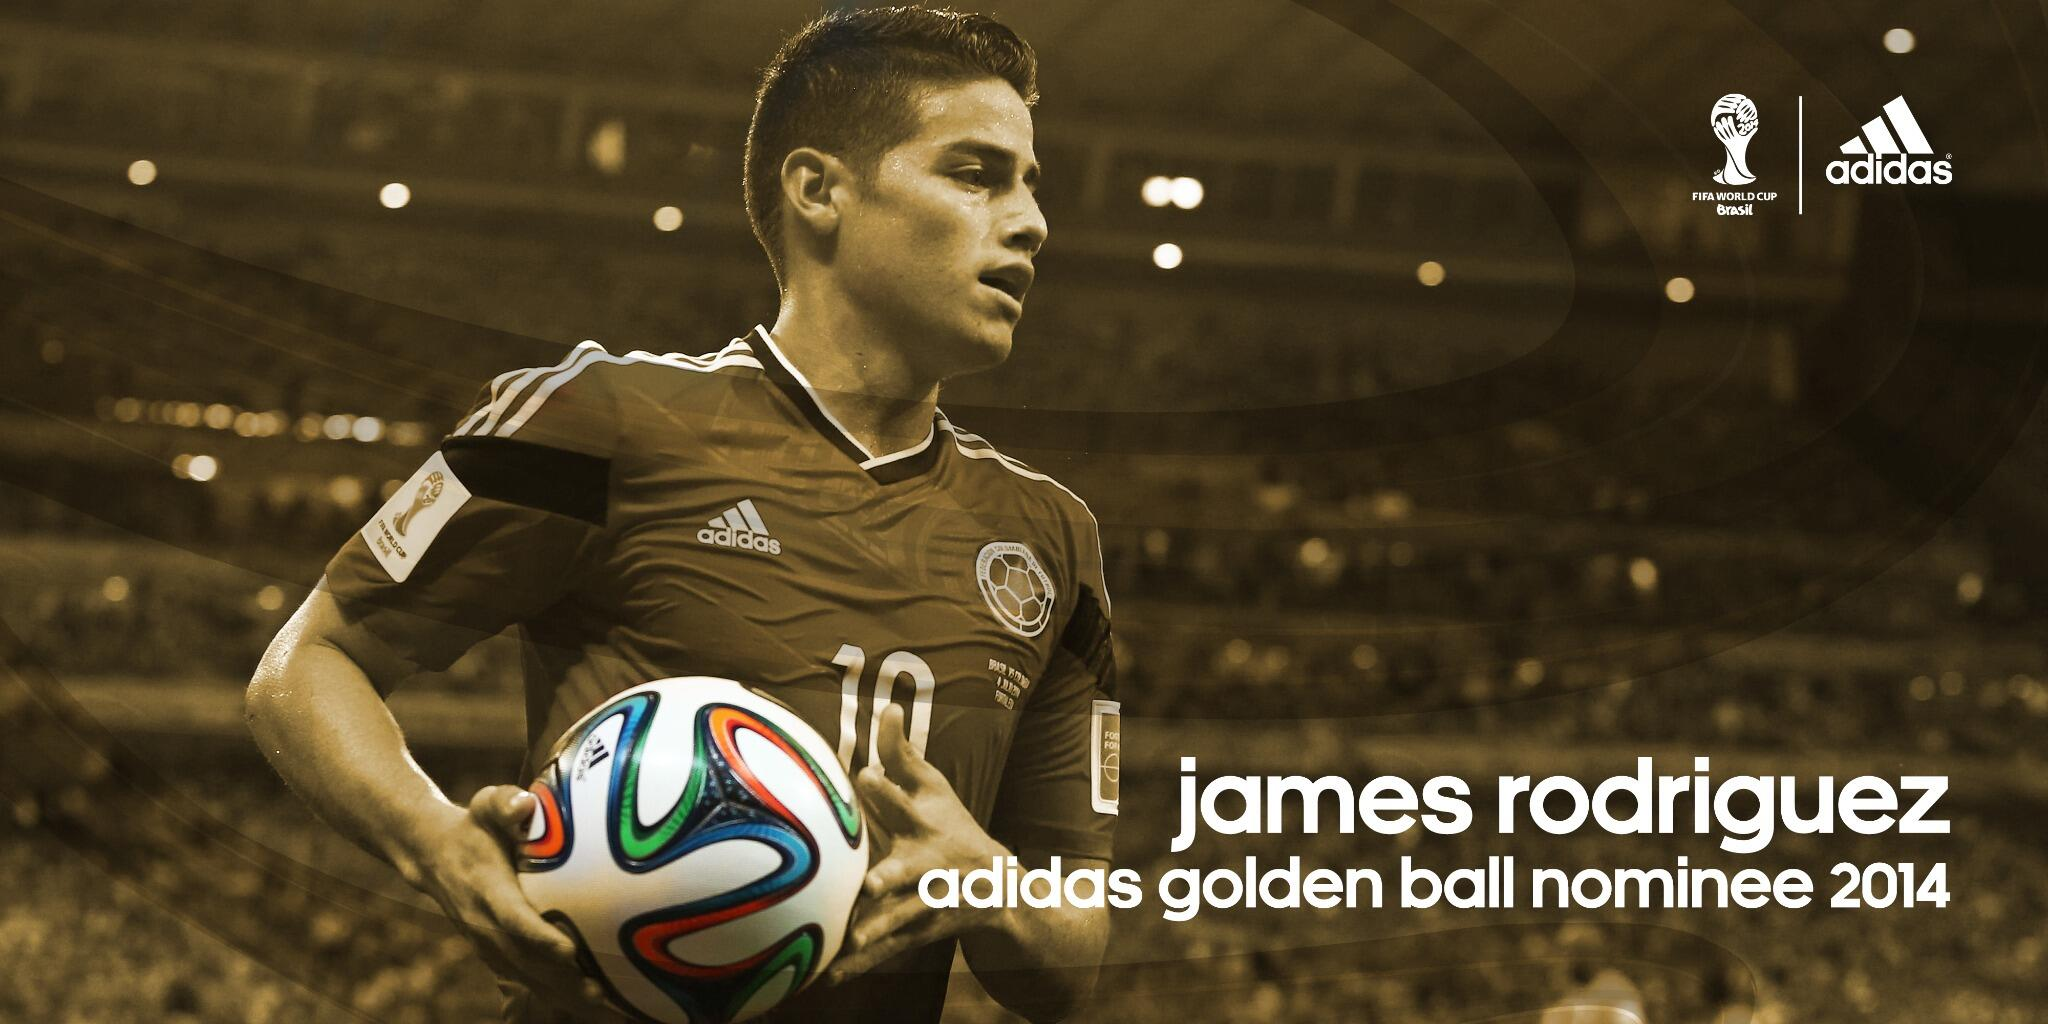 RT @brazuca: However good @jamesdrodriguez looked at the @FIFAWorldCup I can tell you he was better. #GoldenBall #Superstar http://t.co/oFL?